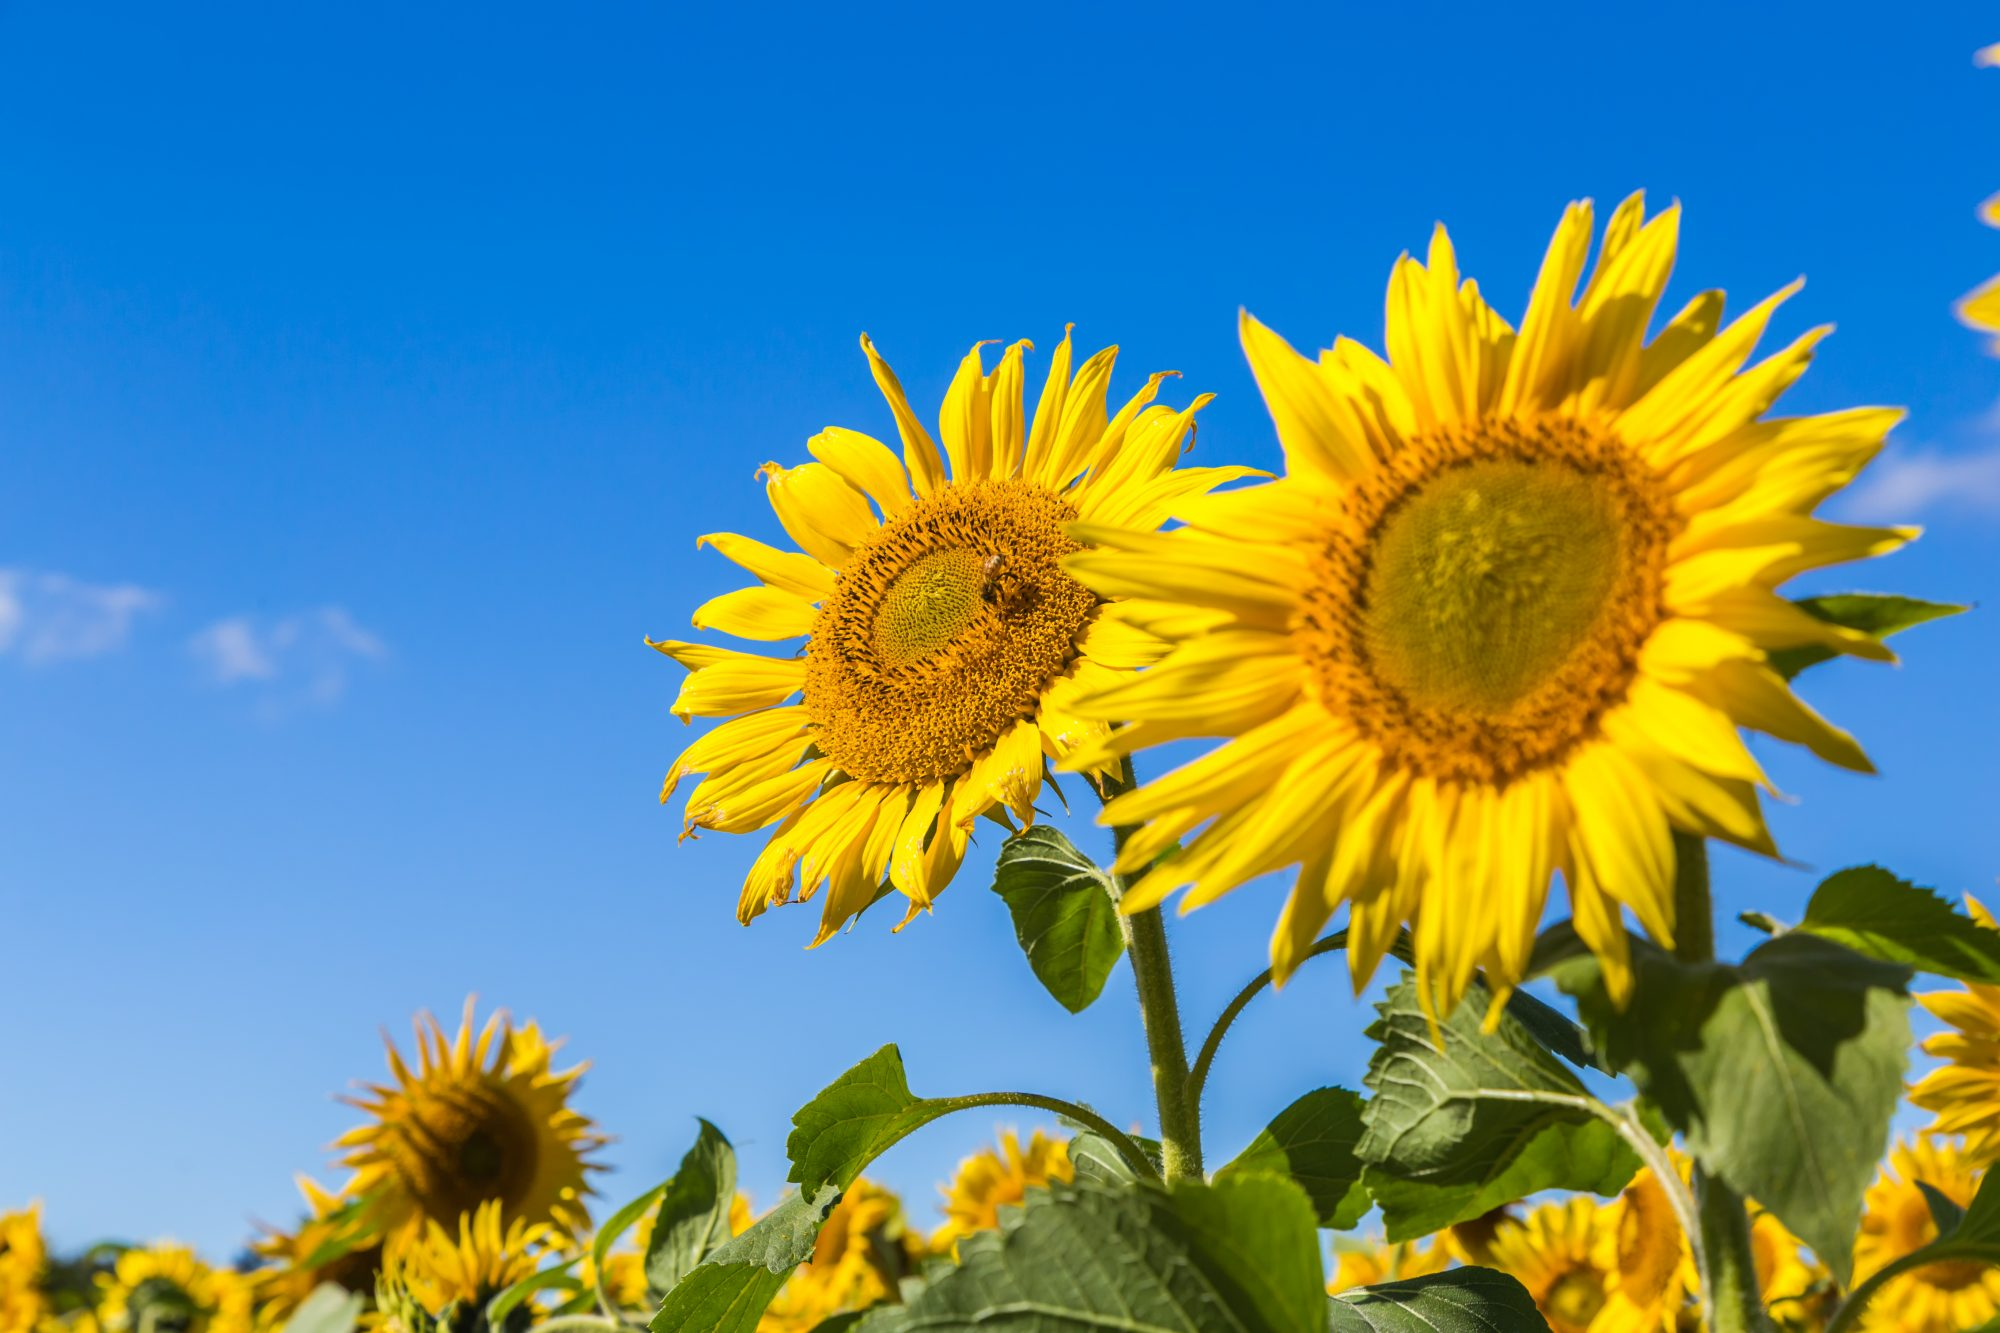 Heat Wave Causing Sunflowers to Bloom Ahead of Schedule This Year